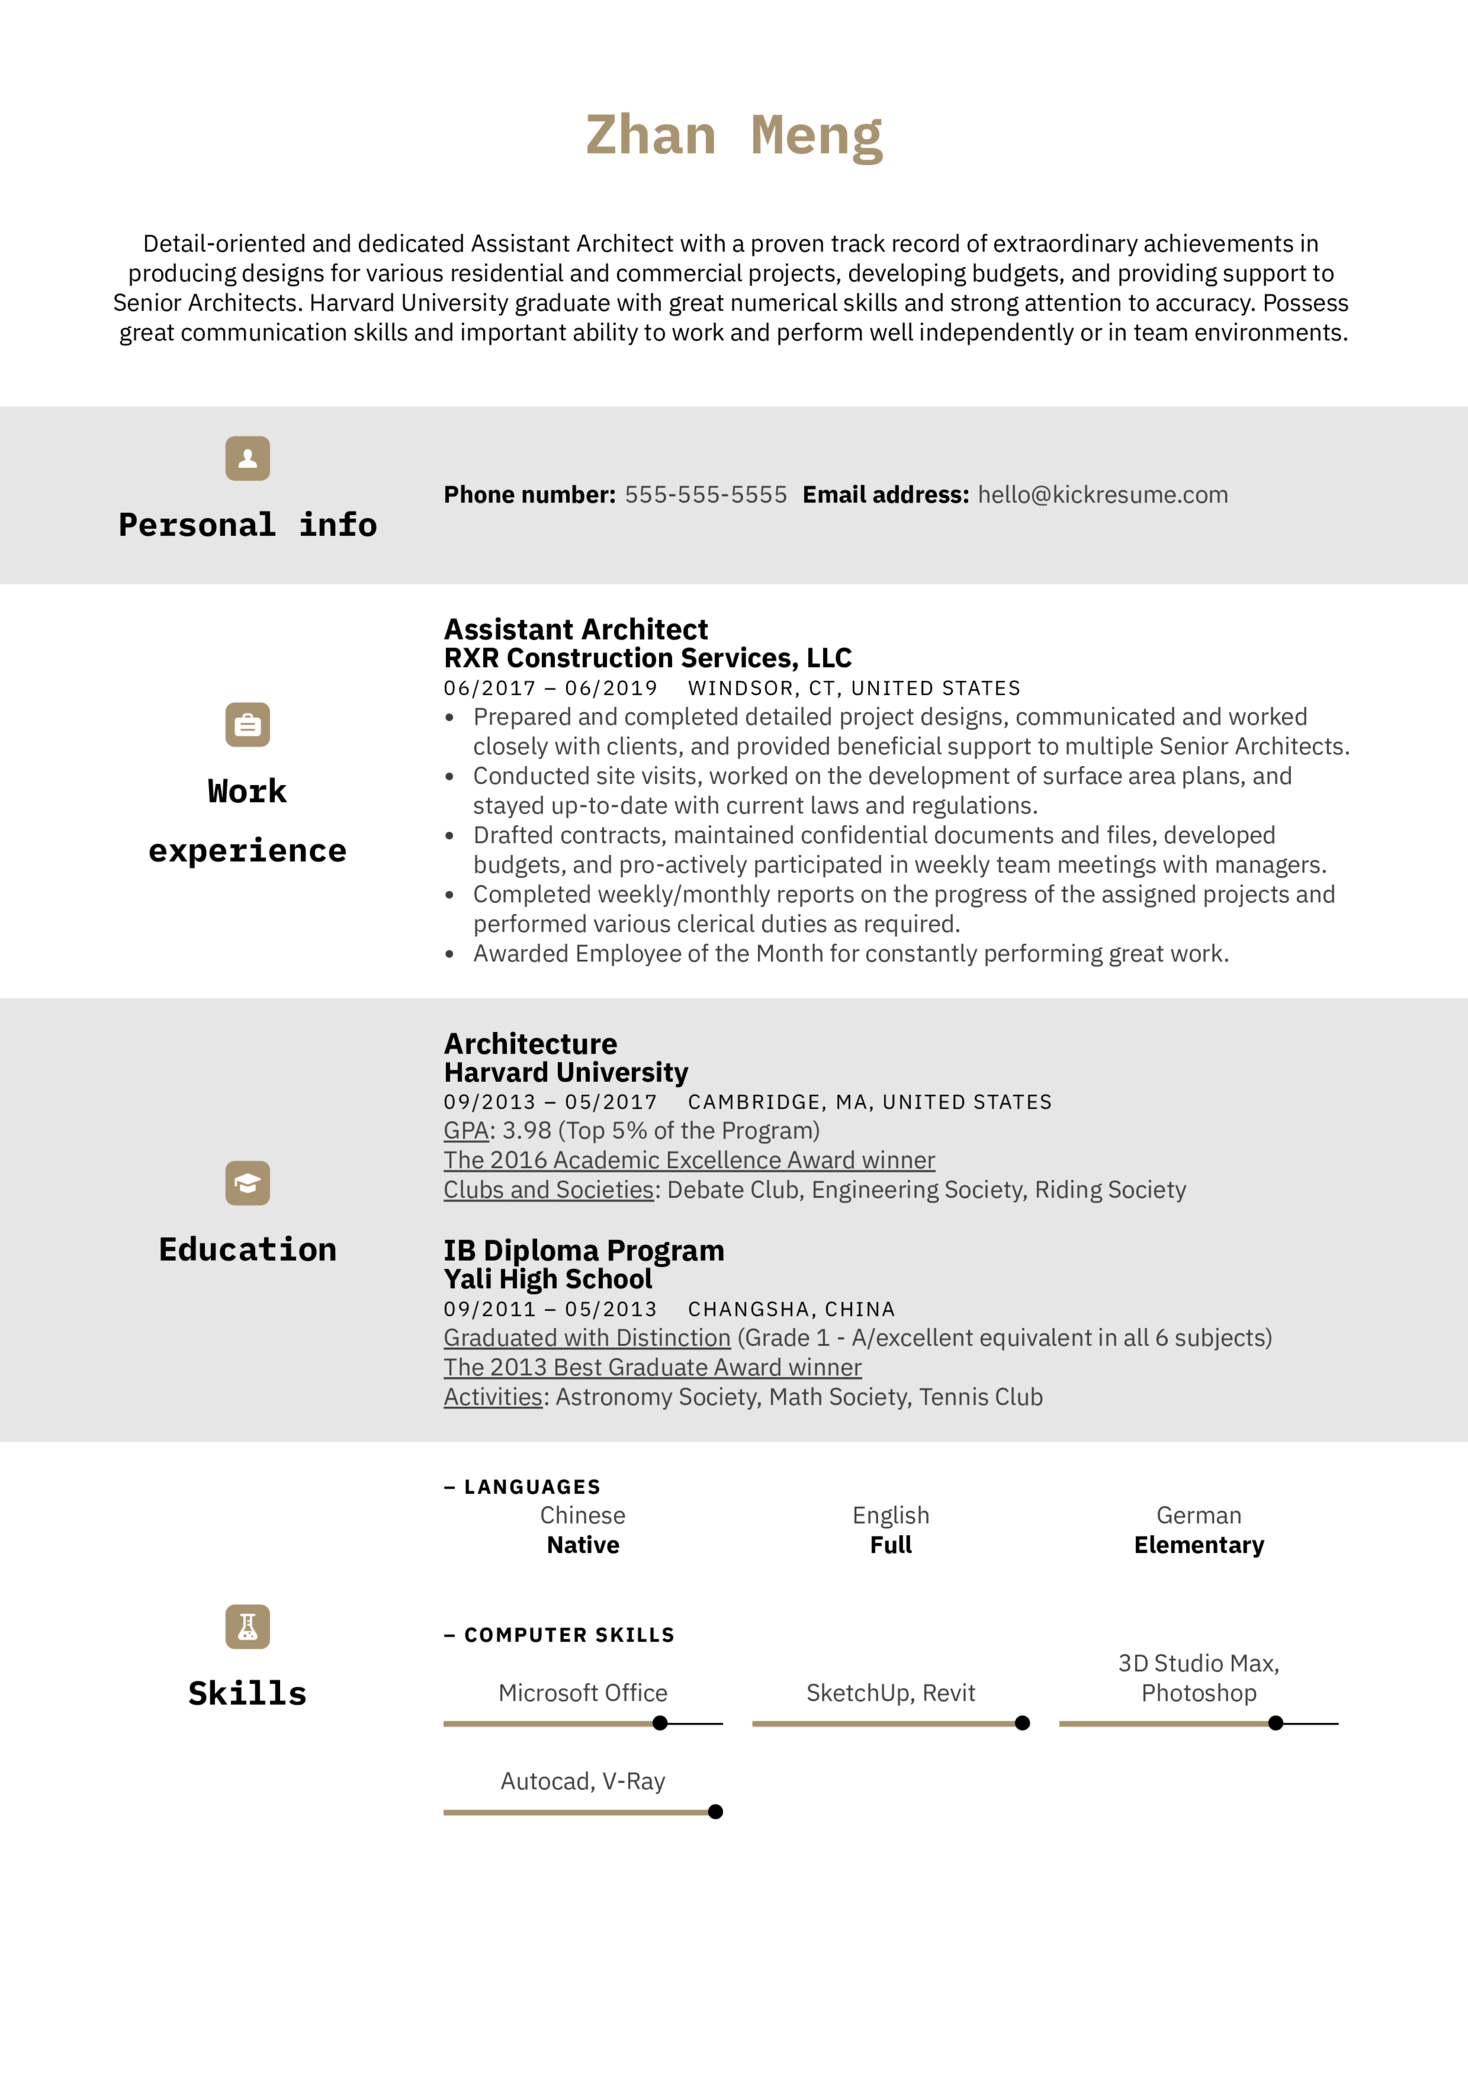 Assistant Architect Resume Example (Part 1)